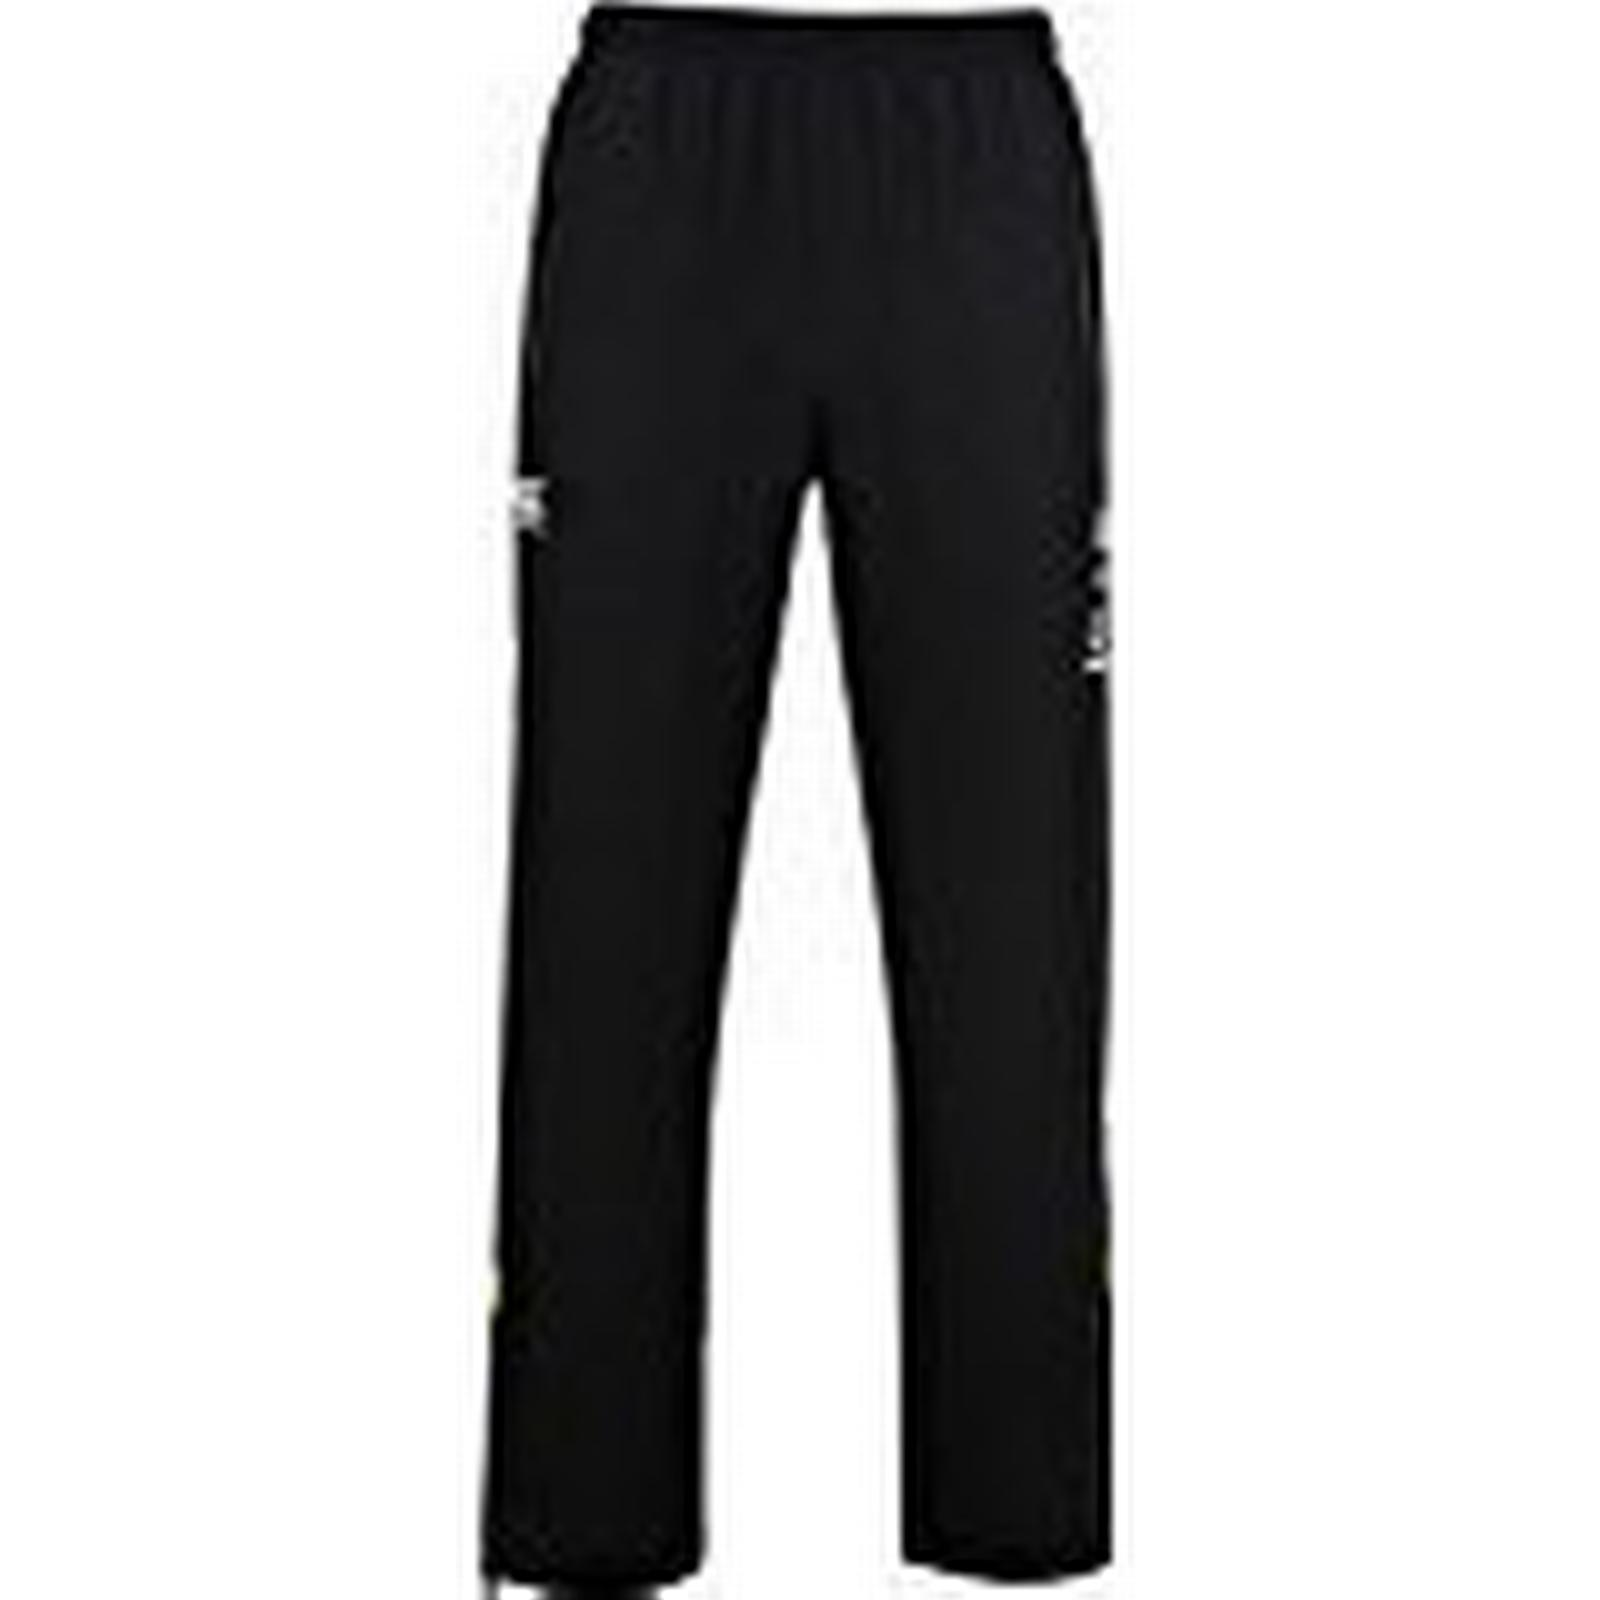 Canterbury Ireland Official 17/18 Men's Rugby Shoe Training Presentation Pants Tap Shoe Rugby L 6eb615